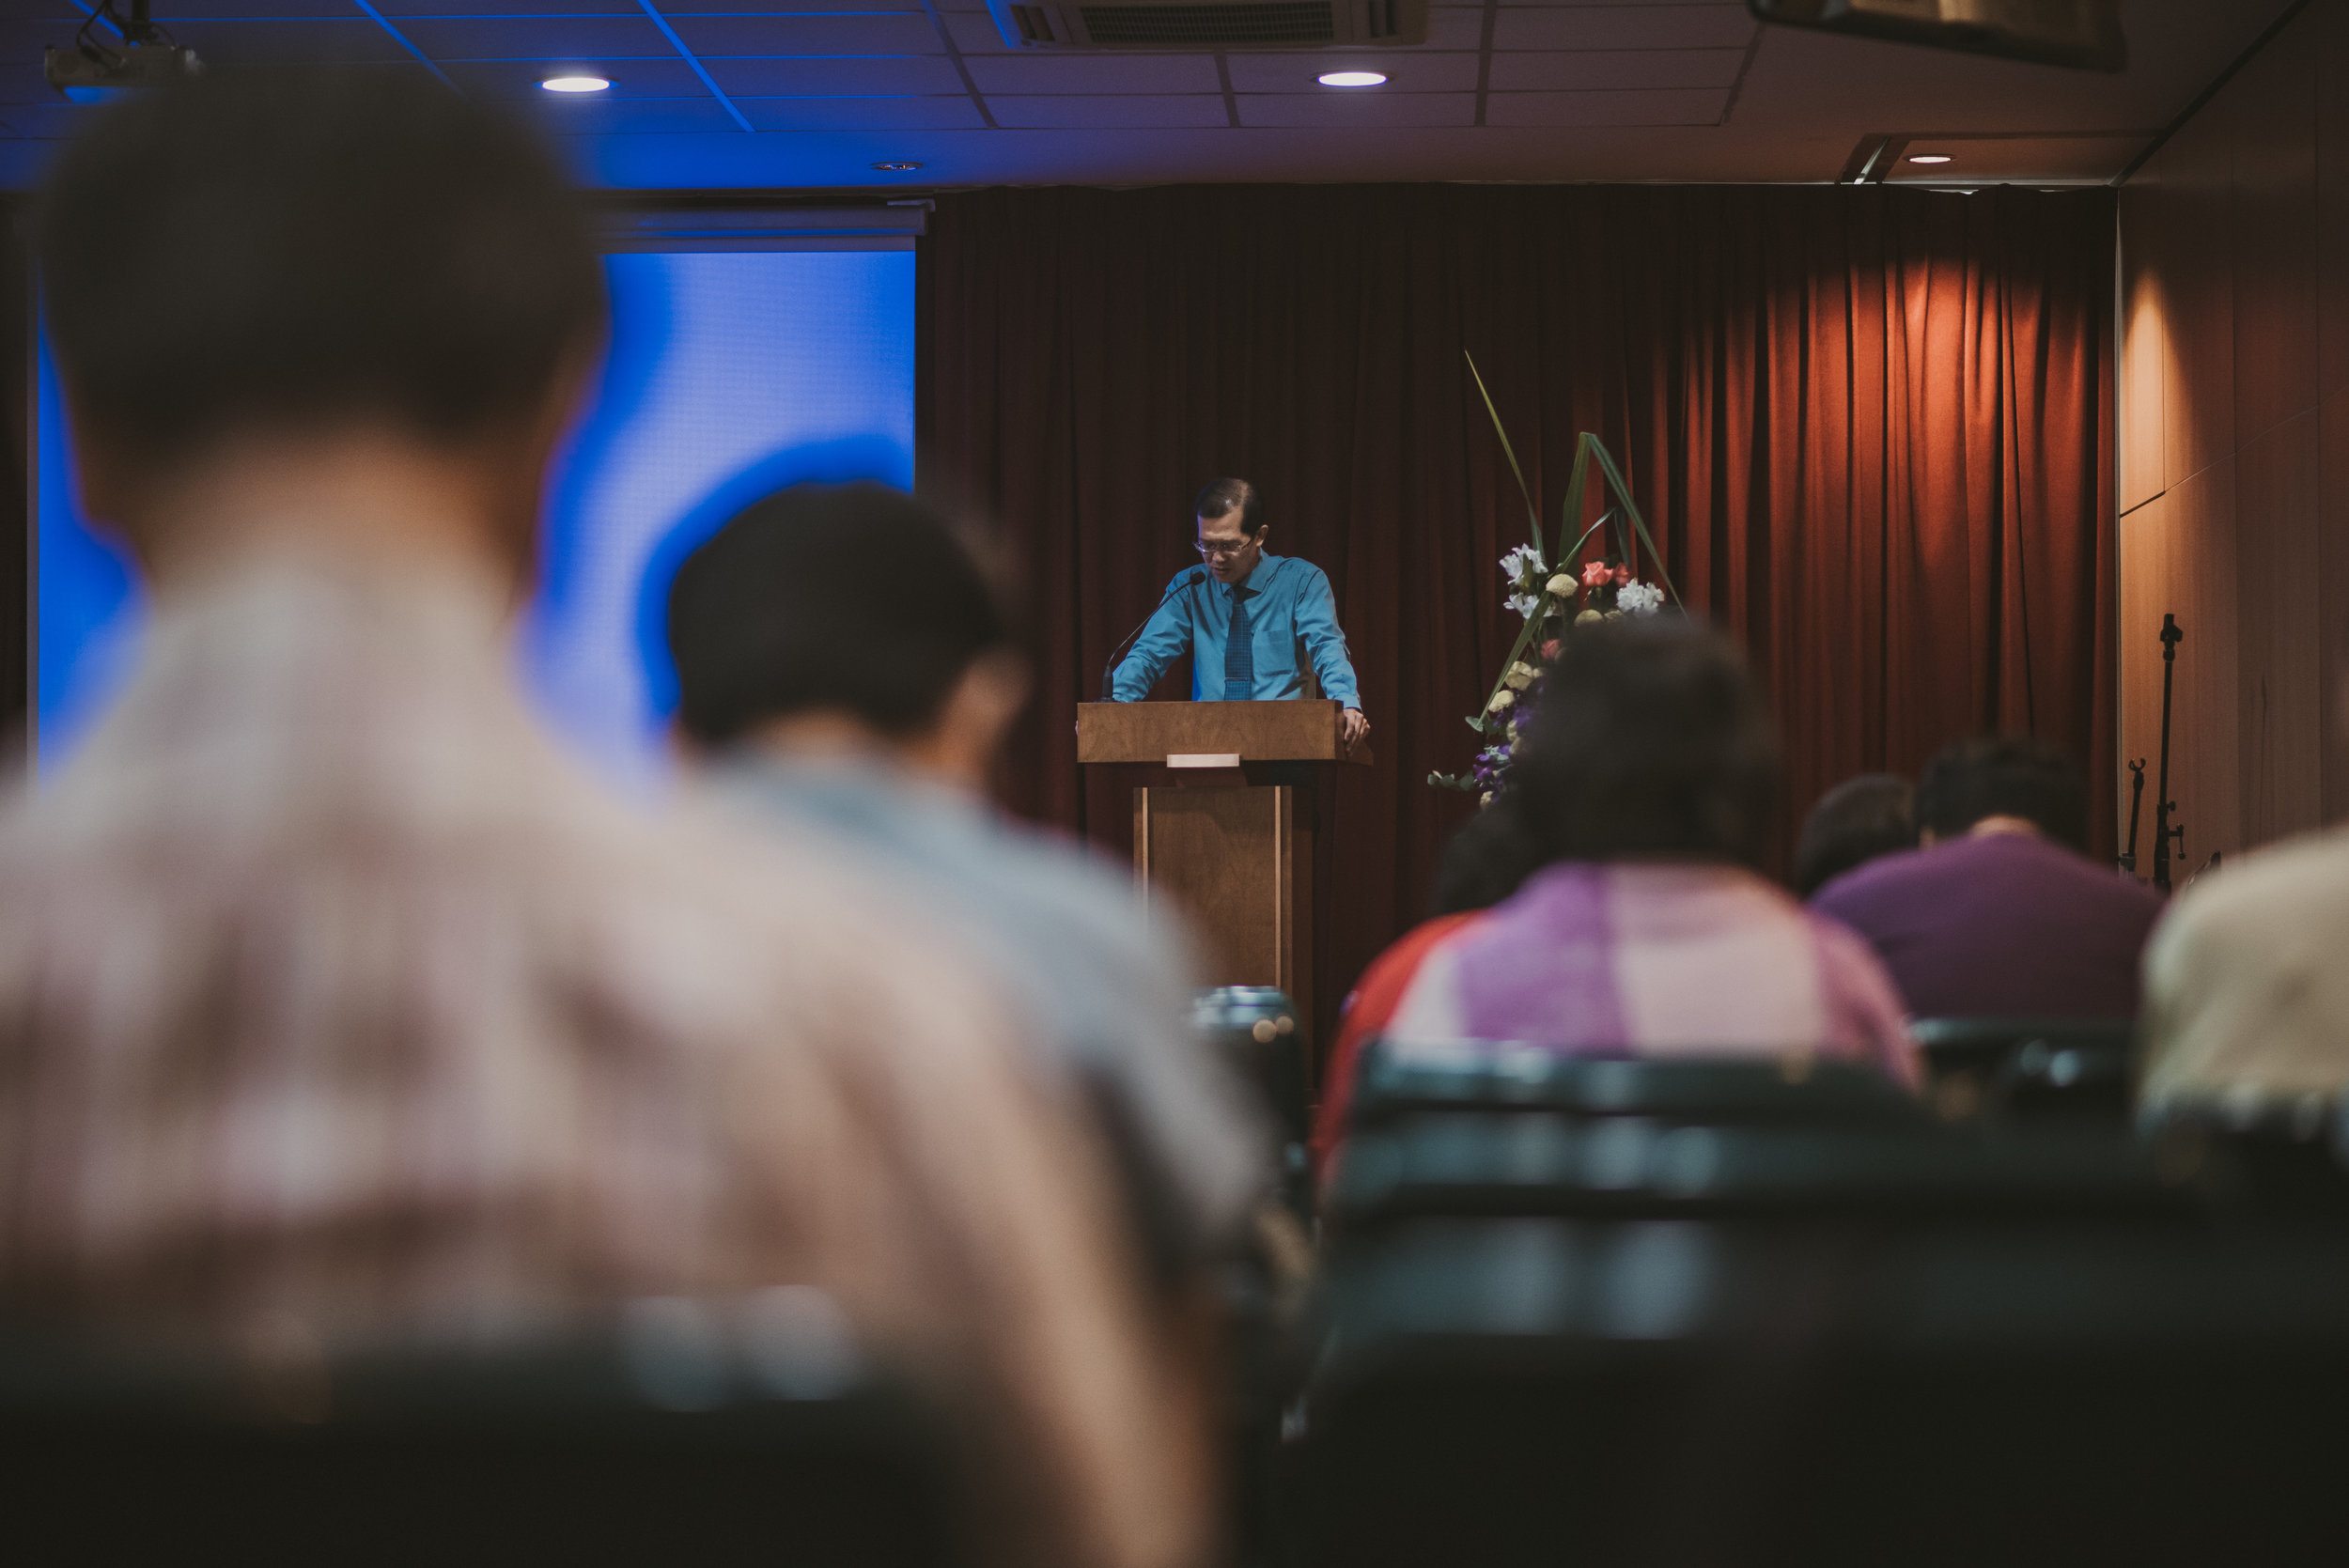 Adults (Mandarin & Hokkien) - 中文部   Mandarin- and Hokkien-speaking worshippers are part of a community that gathers at two Sunday services conducted in the respective languages.